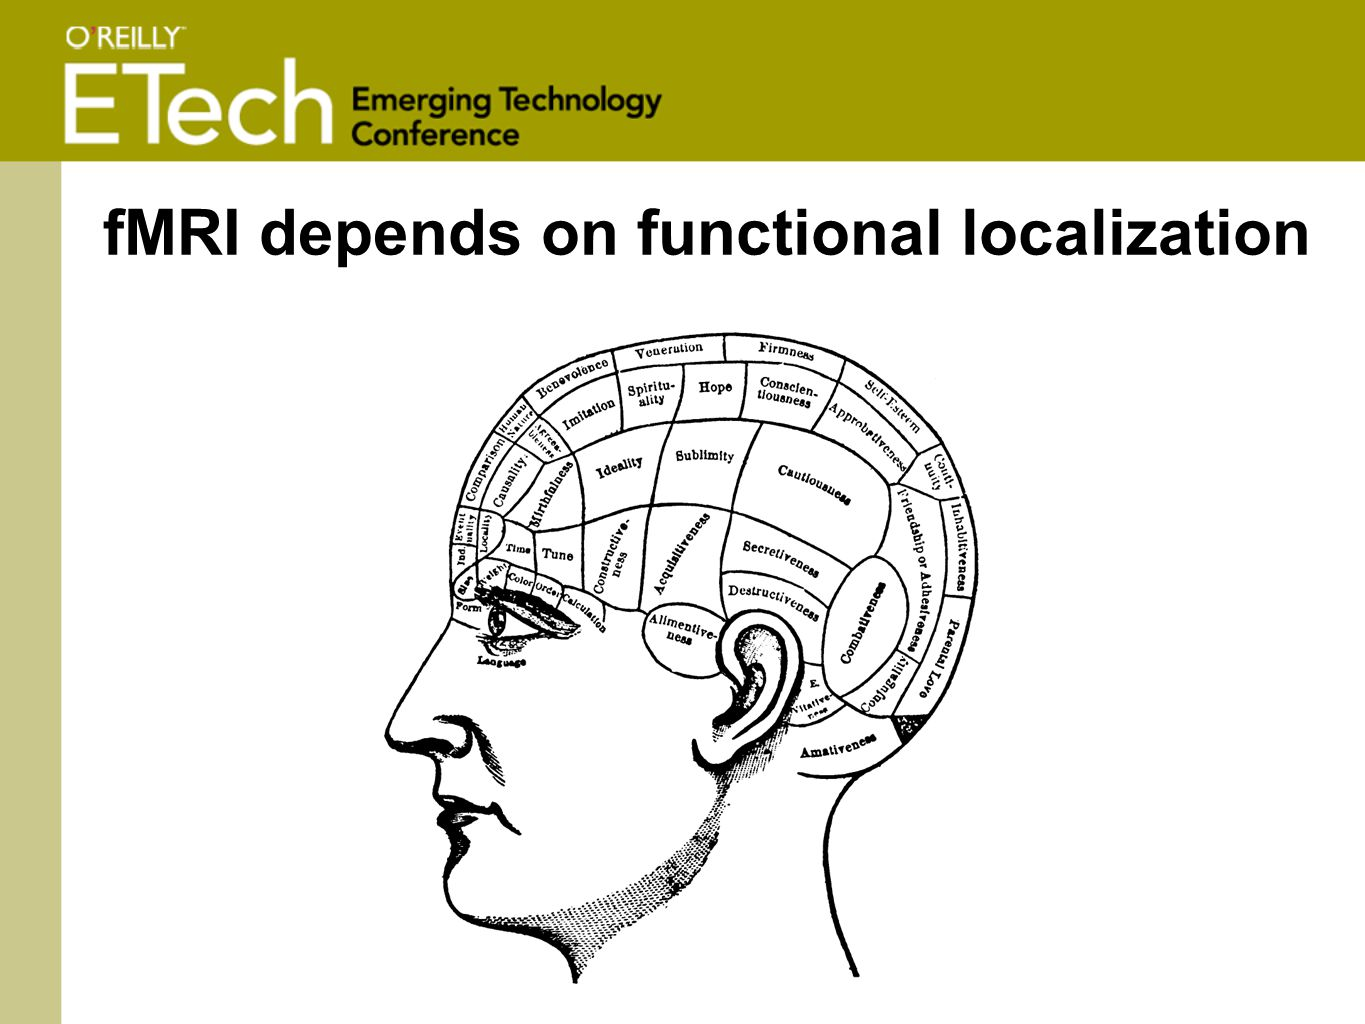 fMRI depends on functional localization